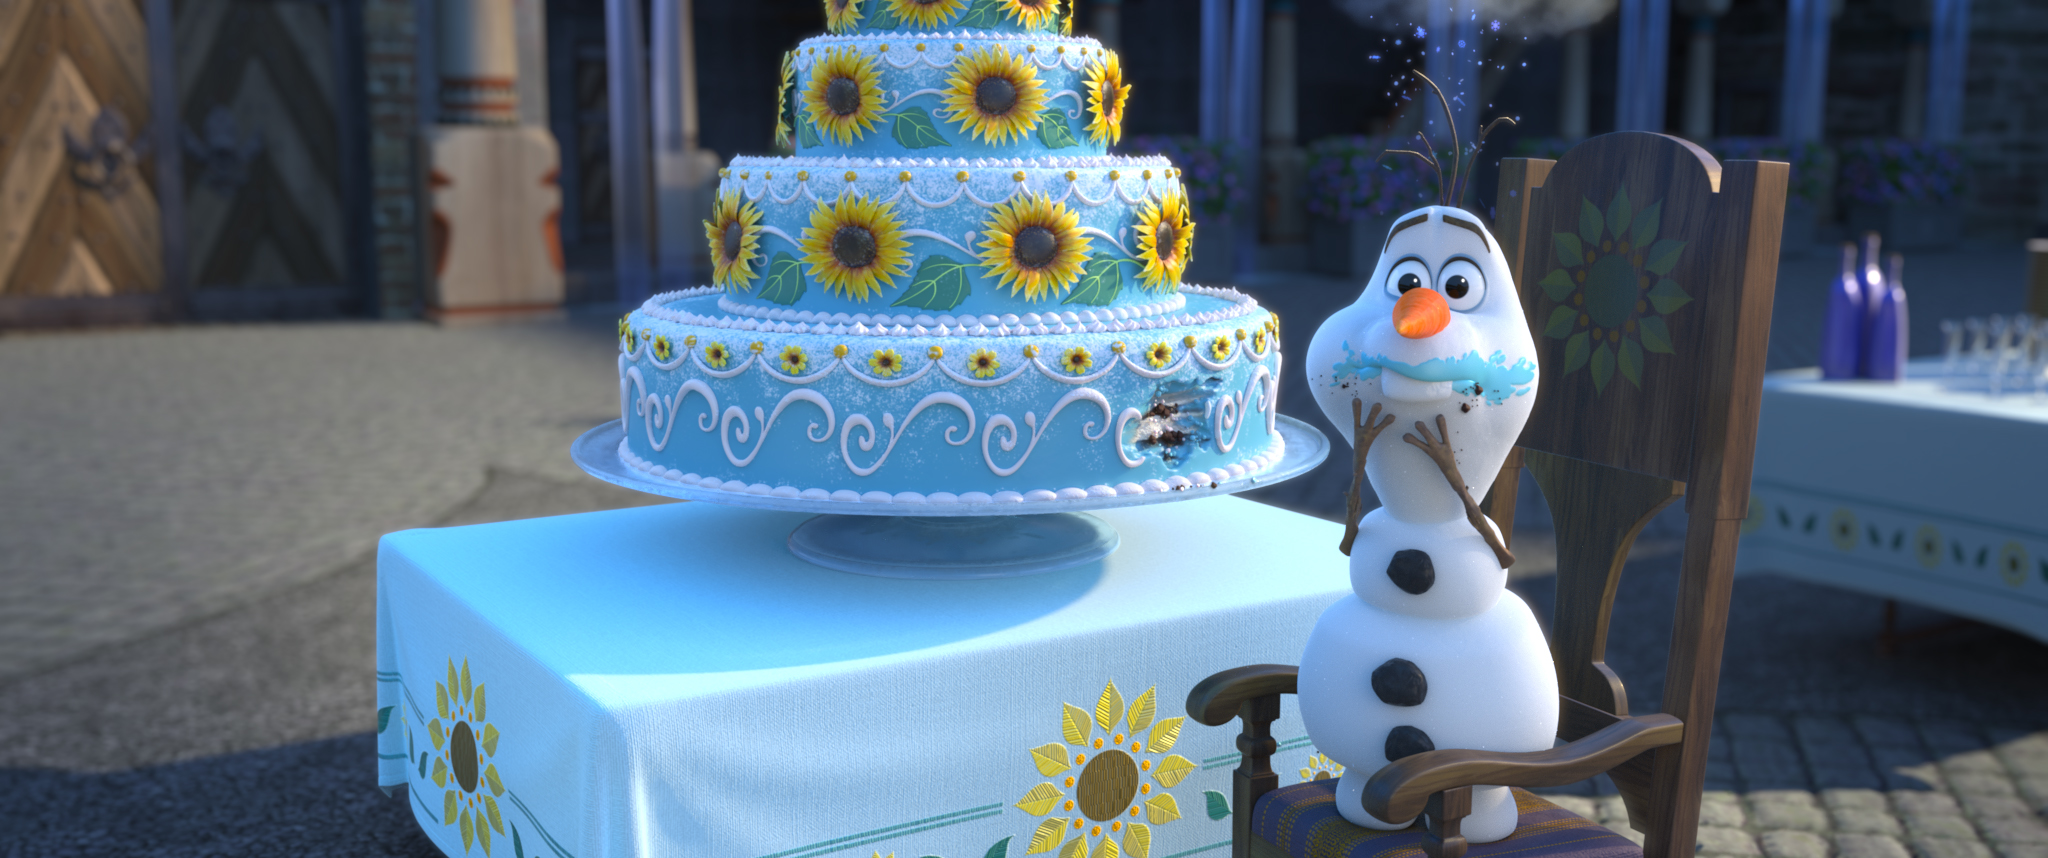 15 Disney inspired snacks you'll want to make at home